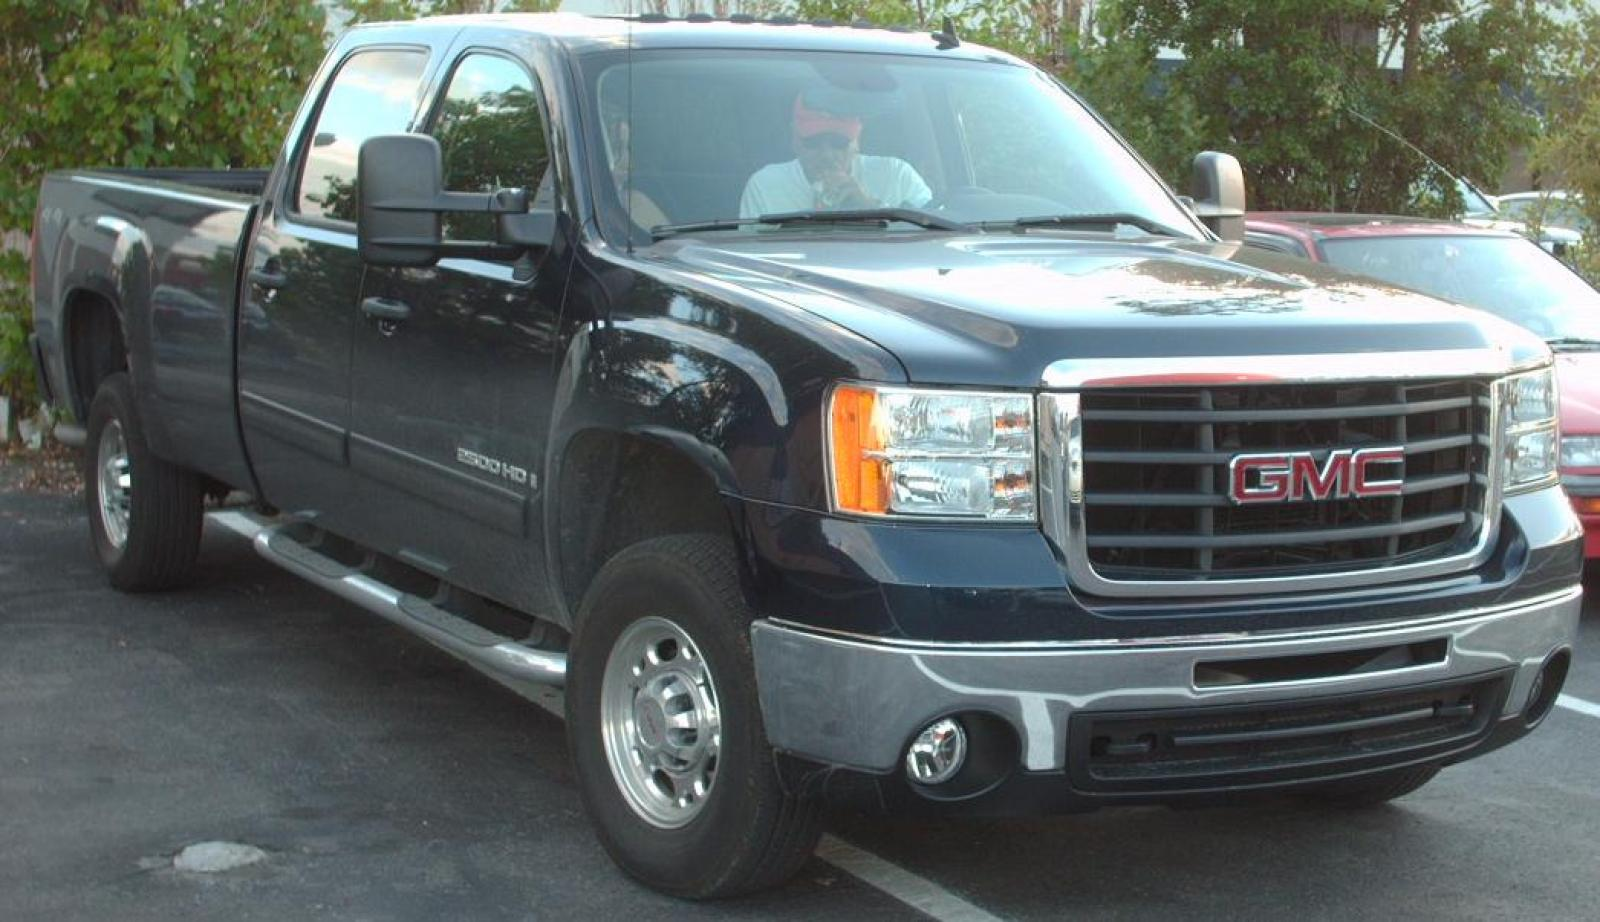 2007 gmc sierra 2500hd information and photos zombiedrive gmc sierra 2500hd 11 800 1024 1280 1600 origin publicscrutiny Choice Image